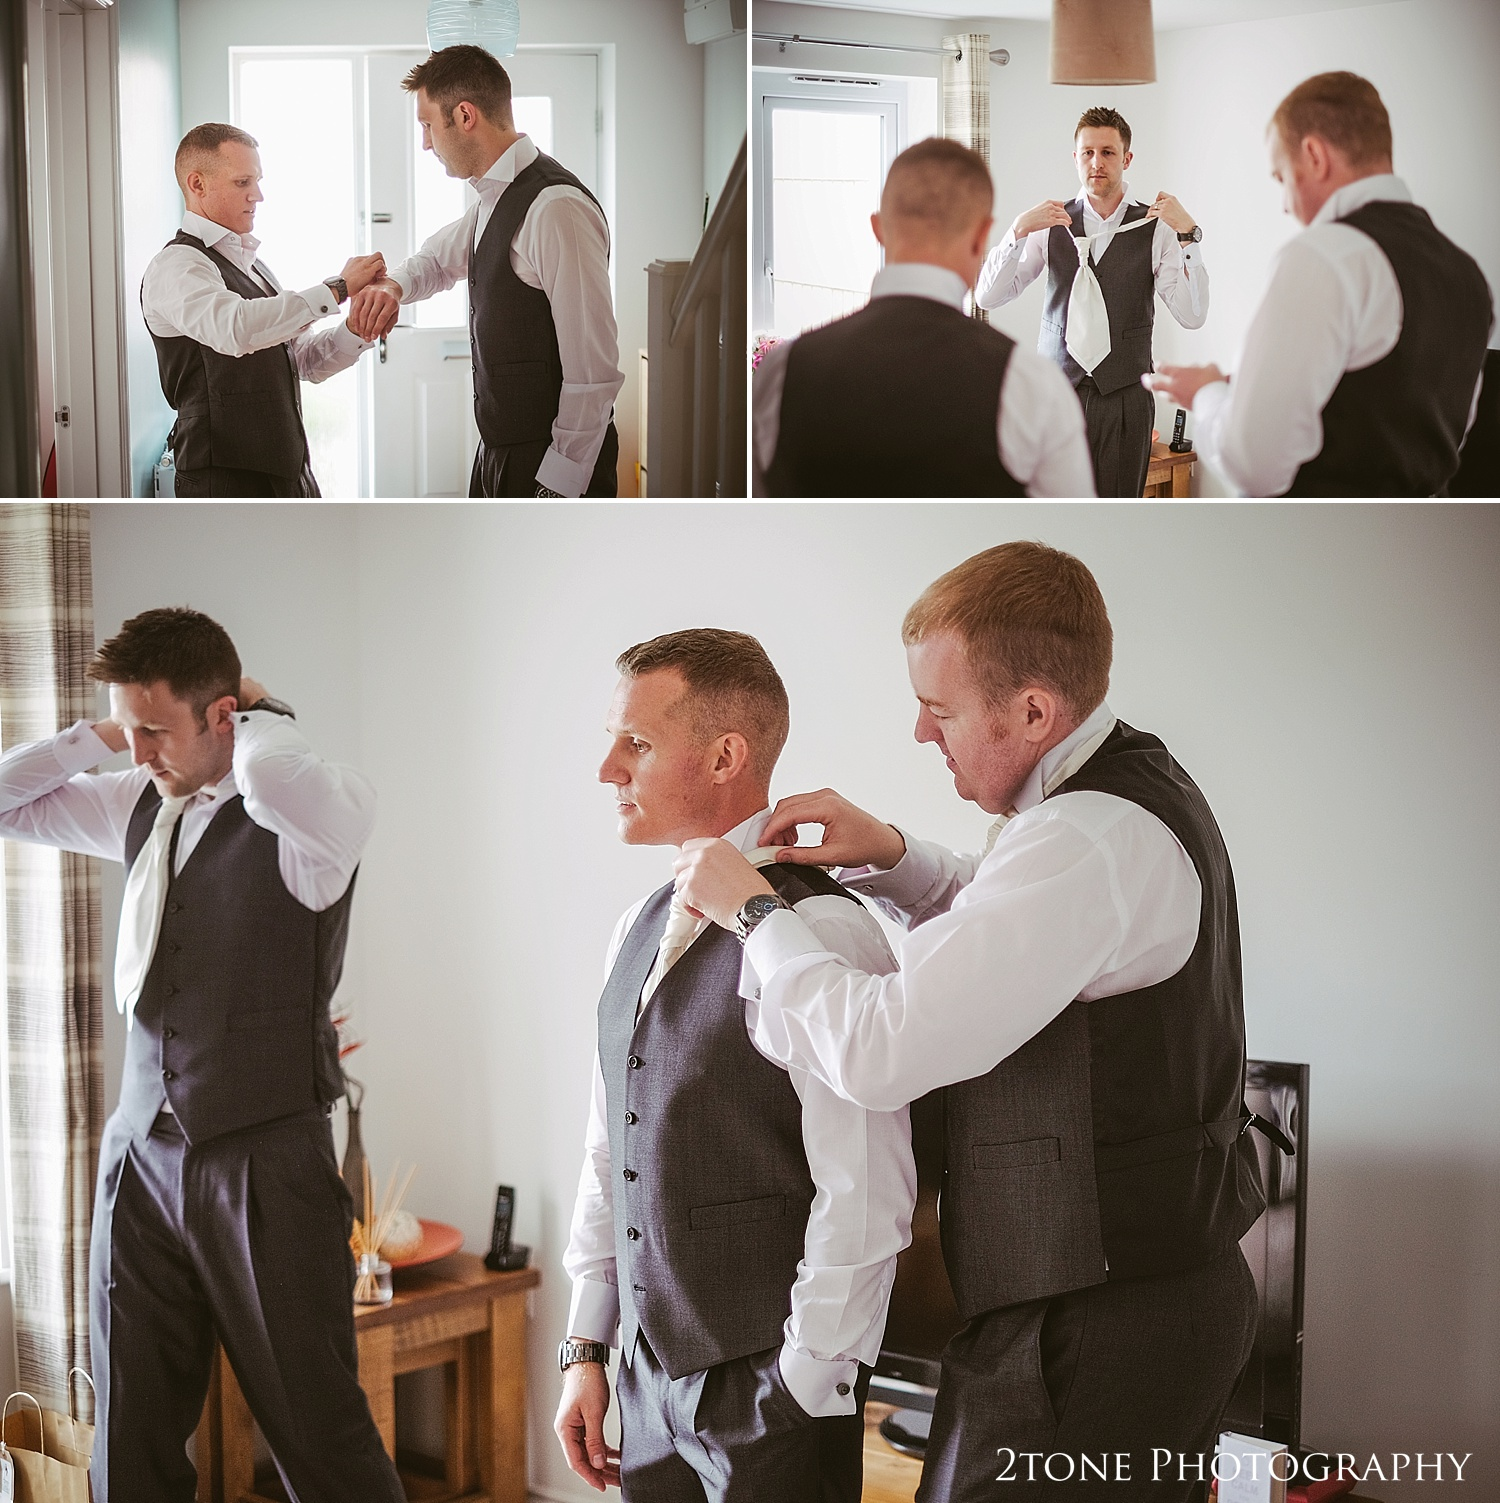 The groom getting ready for his wedding at Jesmond Dene House in Newcastle by 2tone Photography www.2tonephotography.co.uk